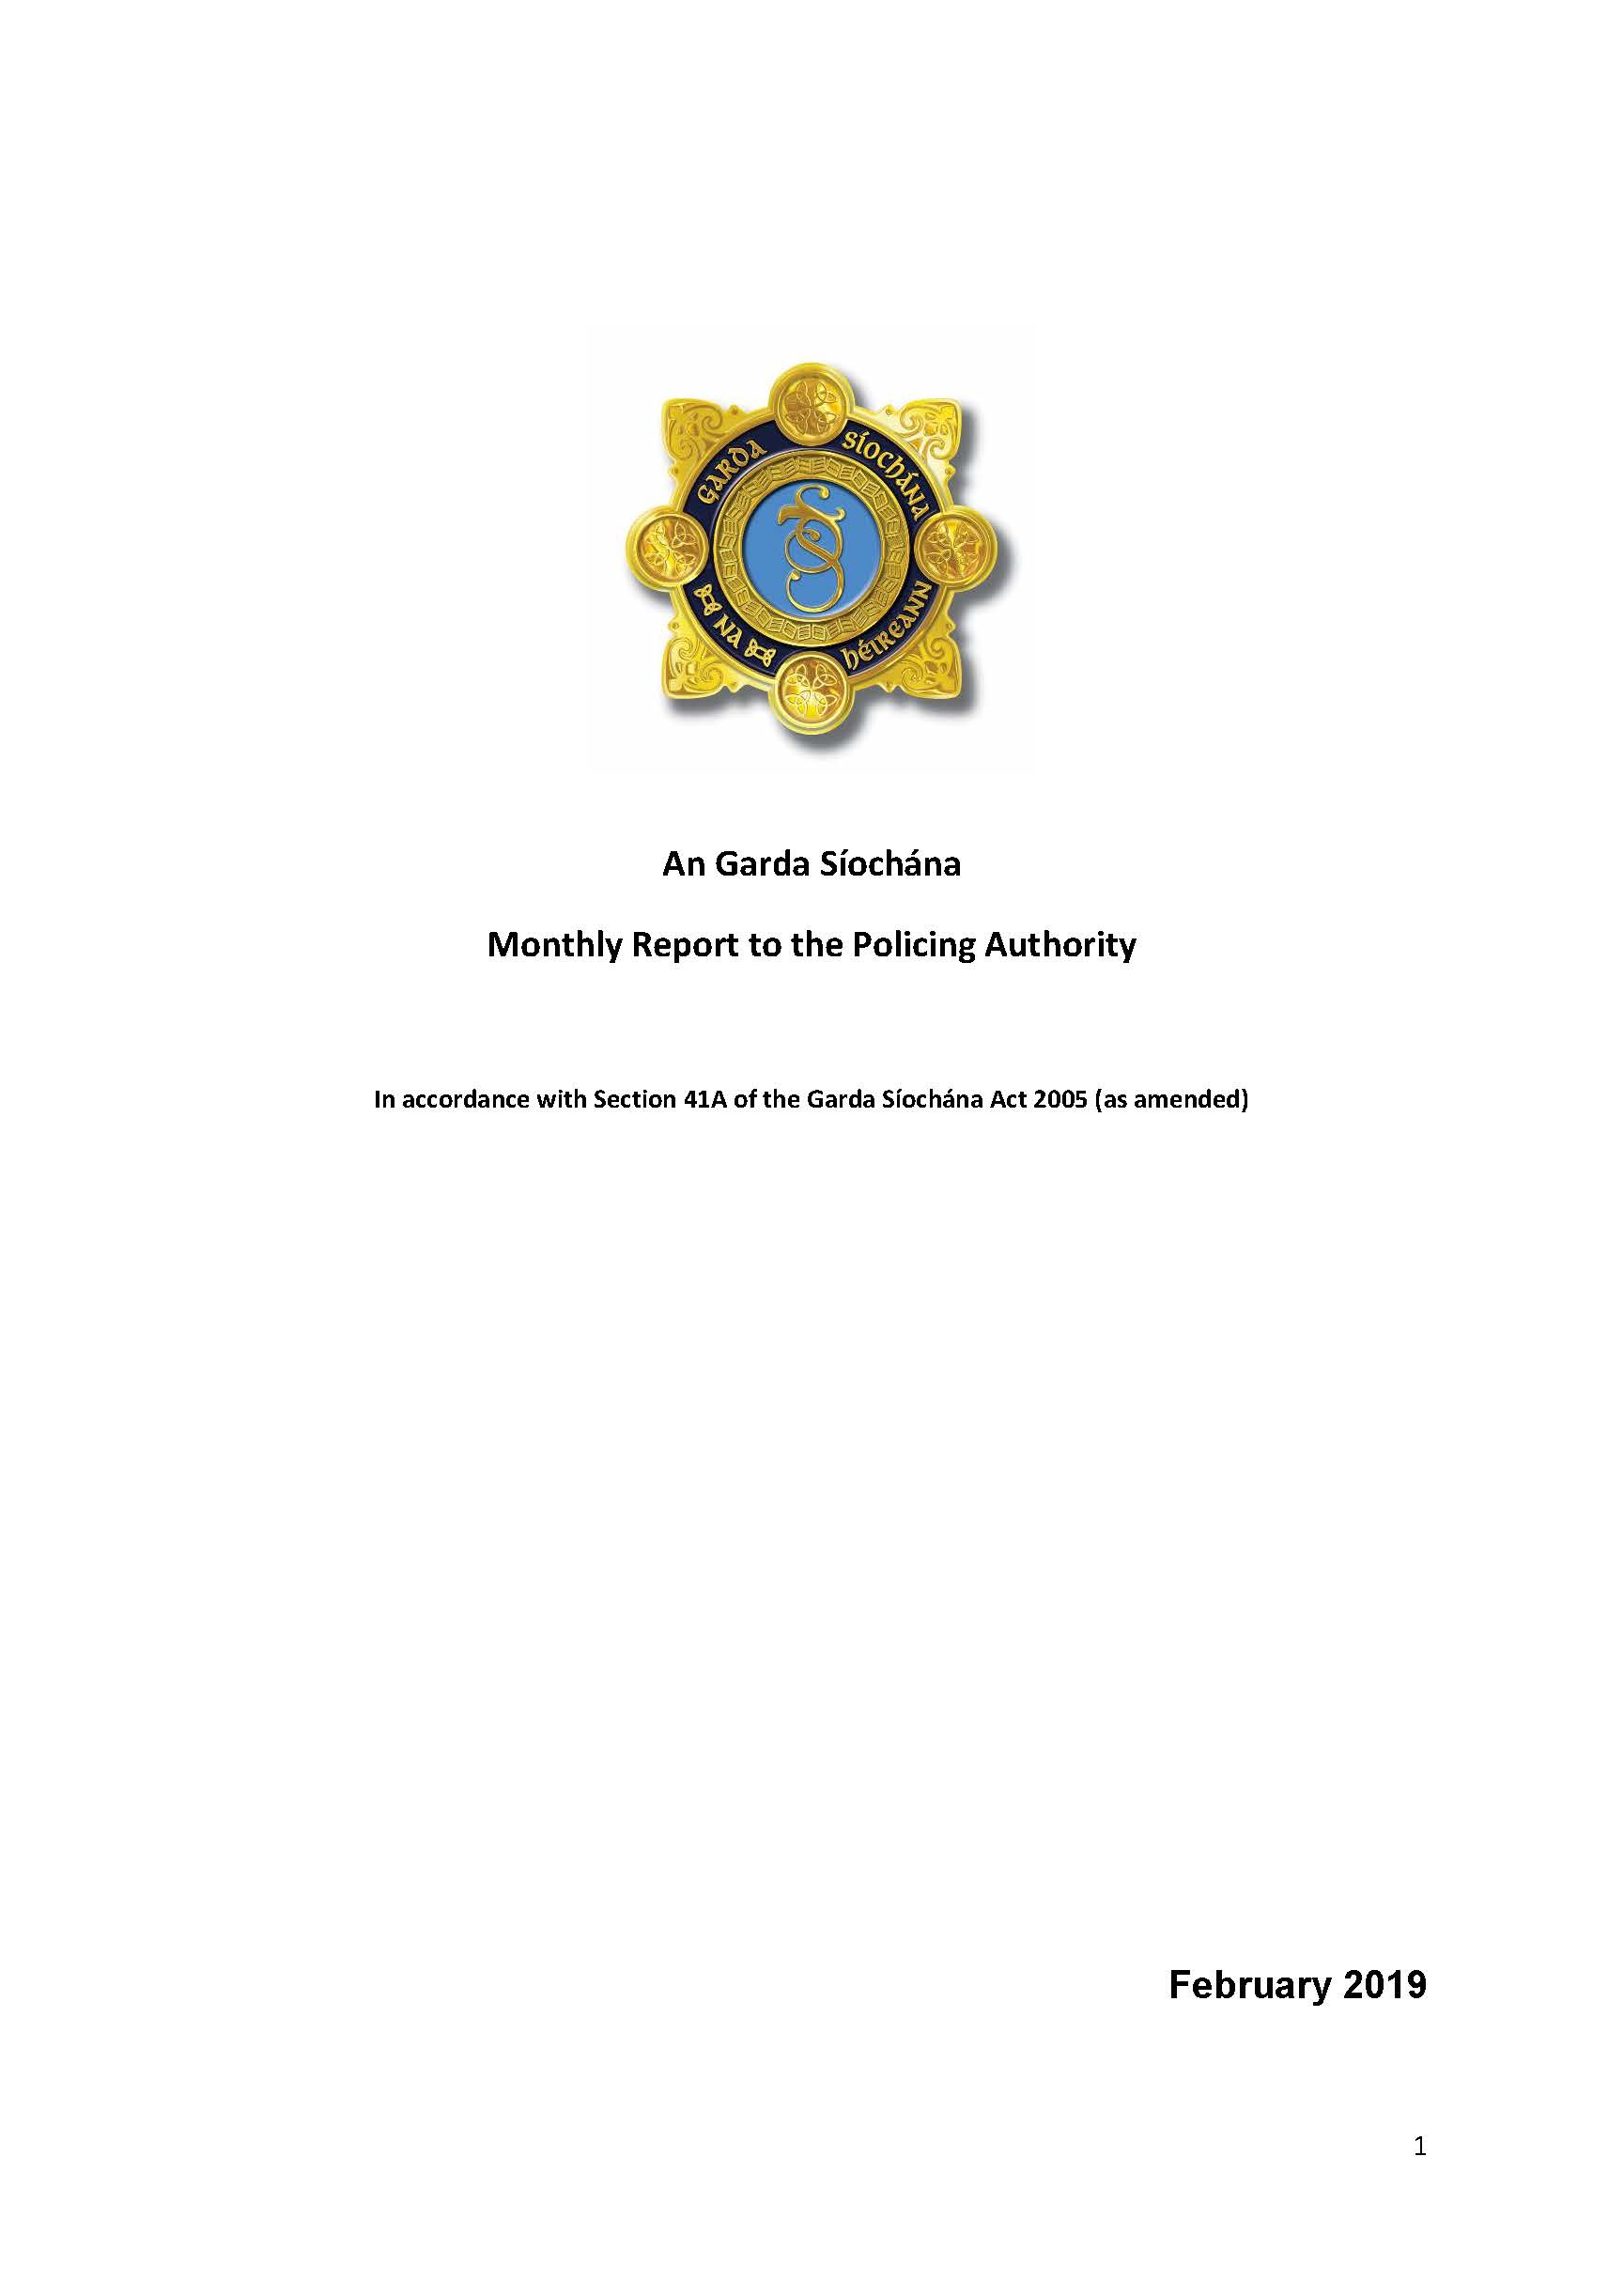 Garda Commissioner's Monthly Report to the Policing Authority - February 2019